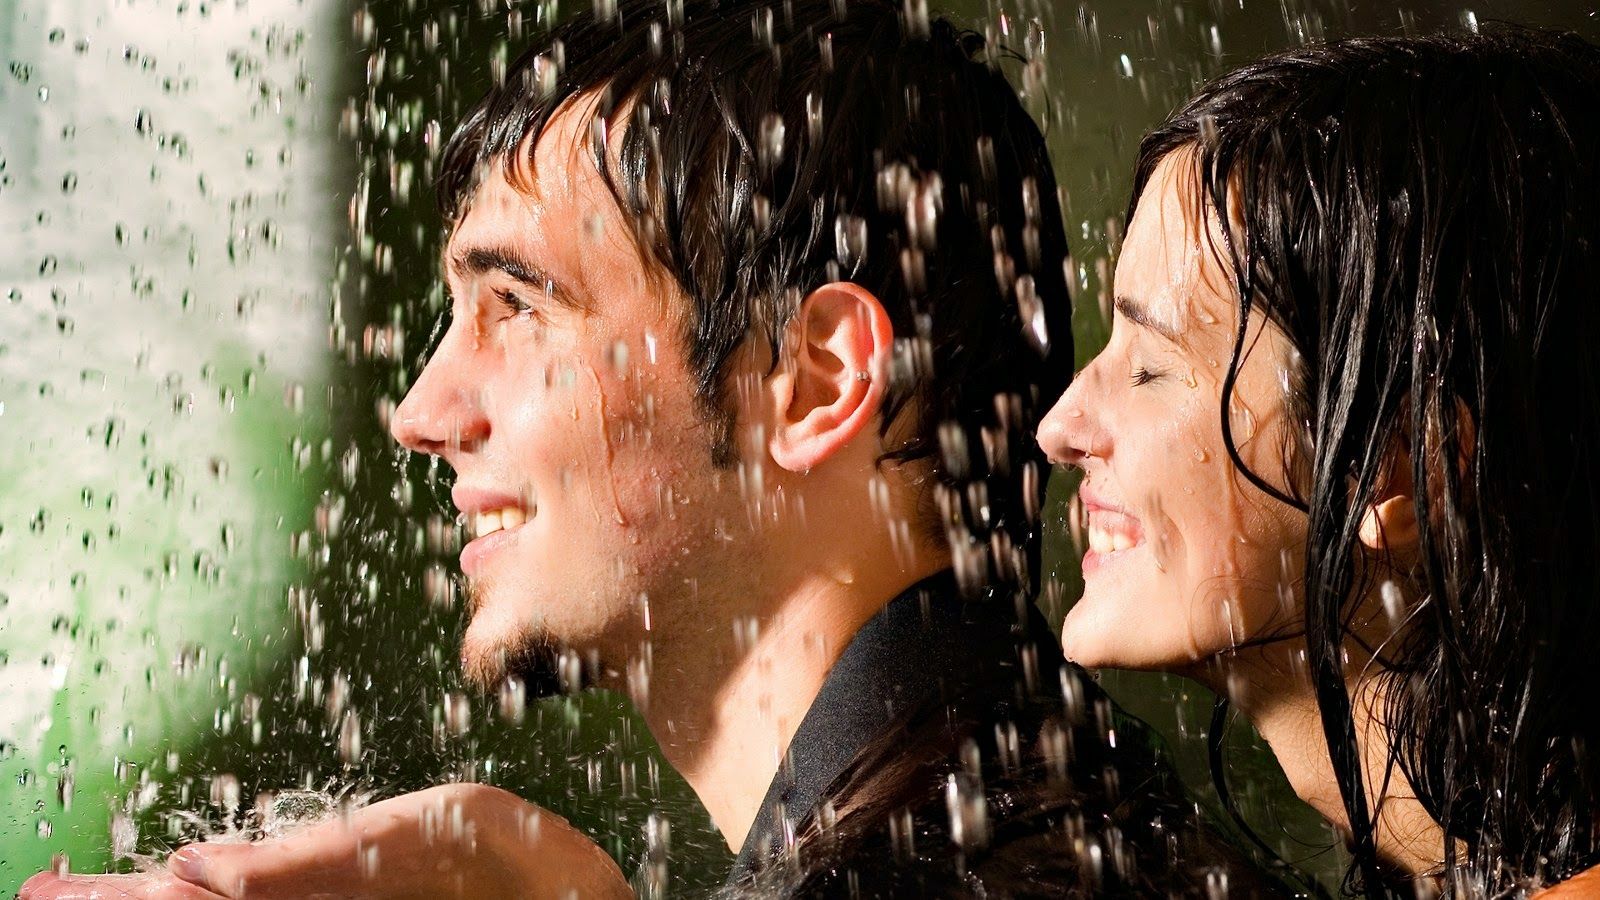 romantic couple in rain - play with rain